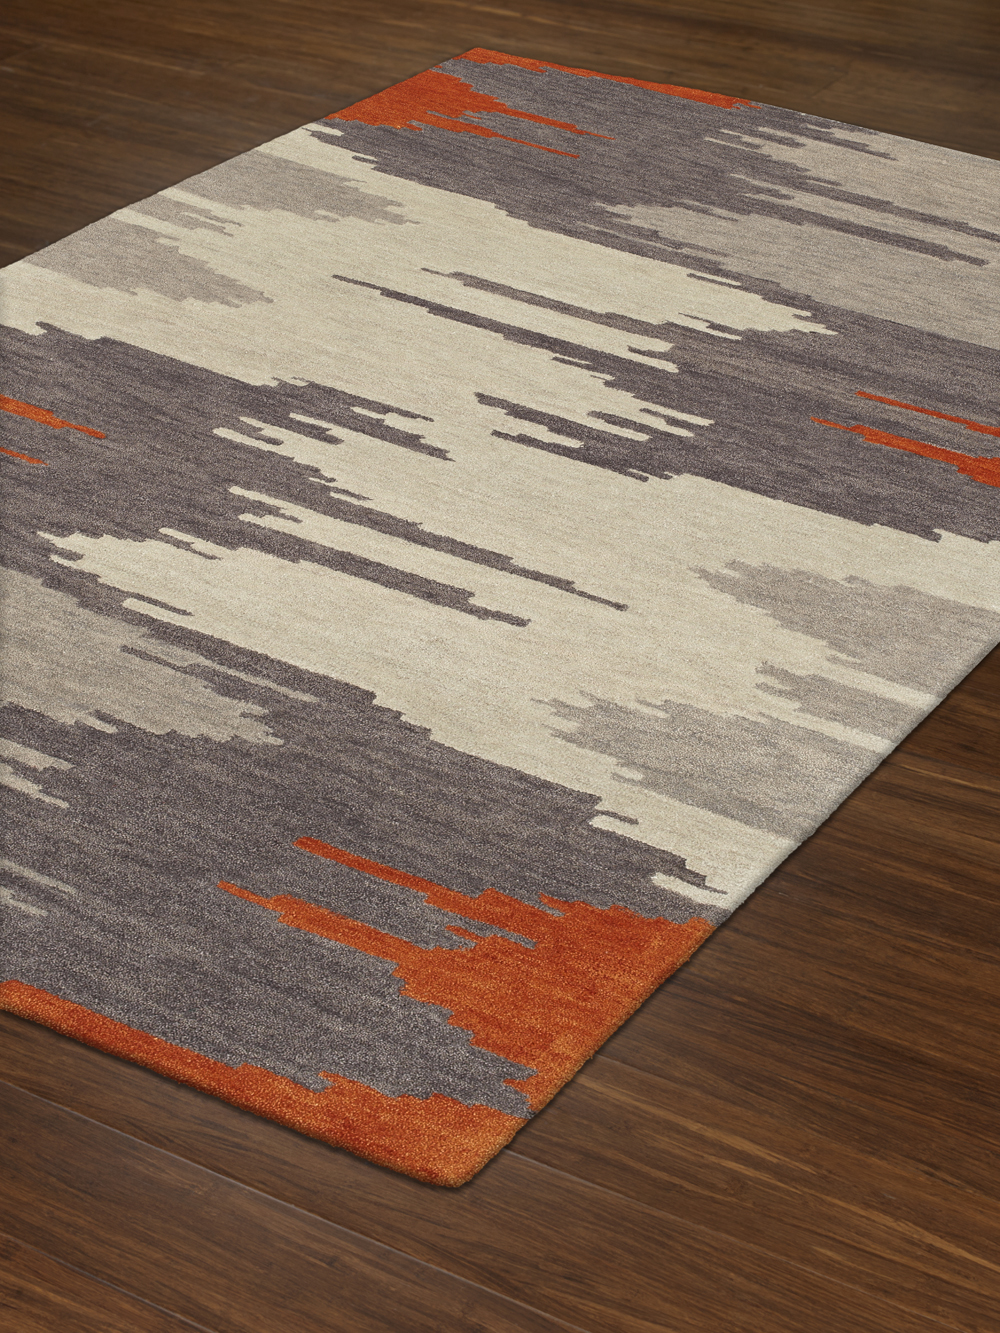 Impulse Orange Art Silk Amp Hand Tufted Wool Pile Rug Soft